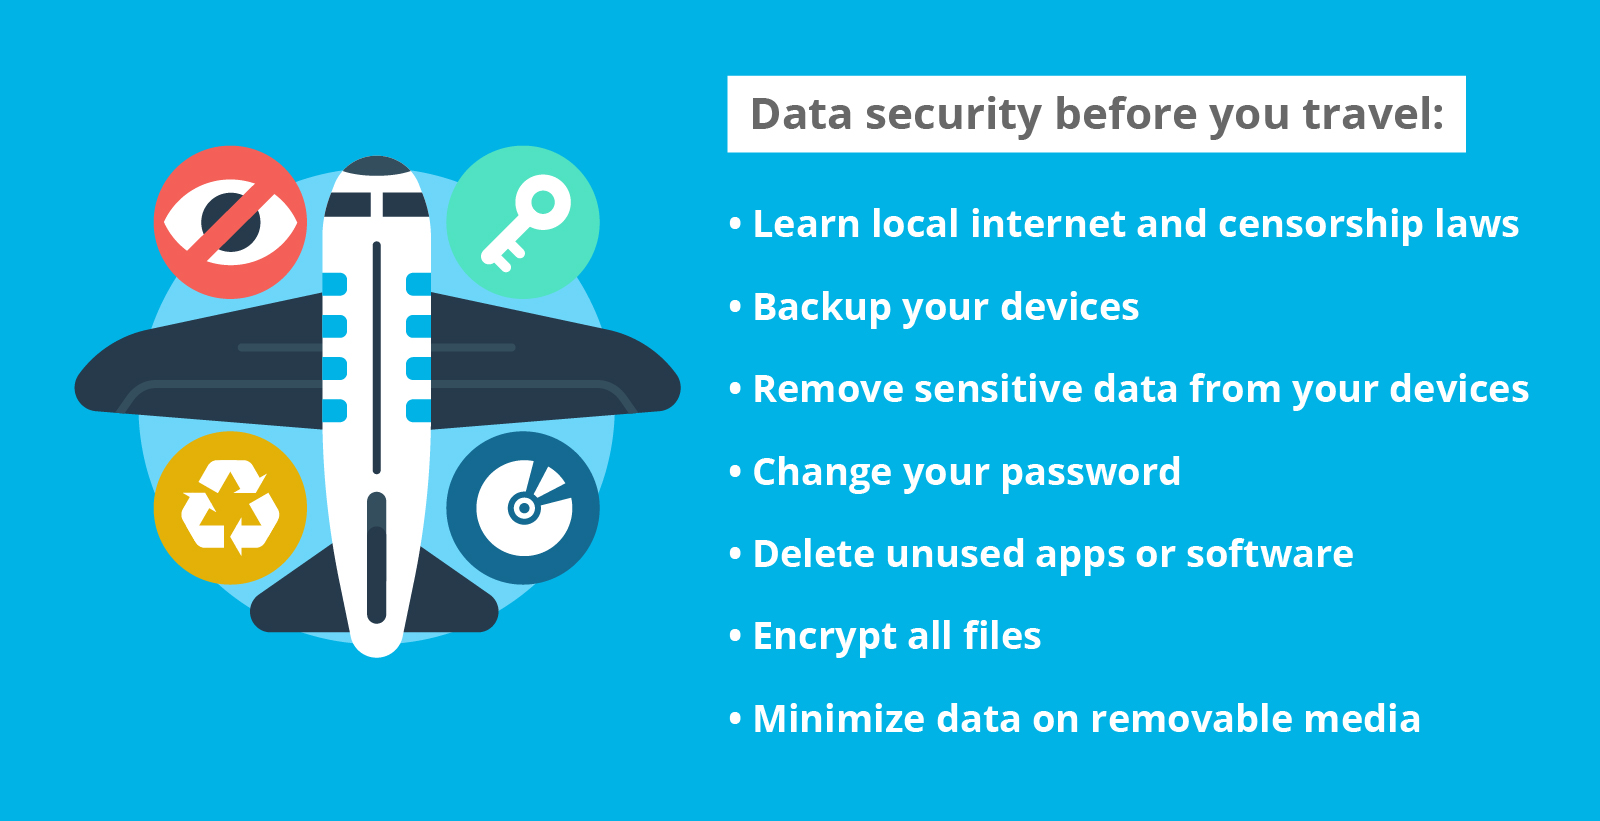 A list of data security tips to check before you travel